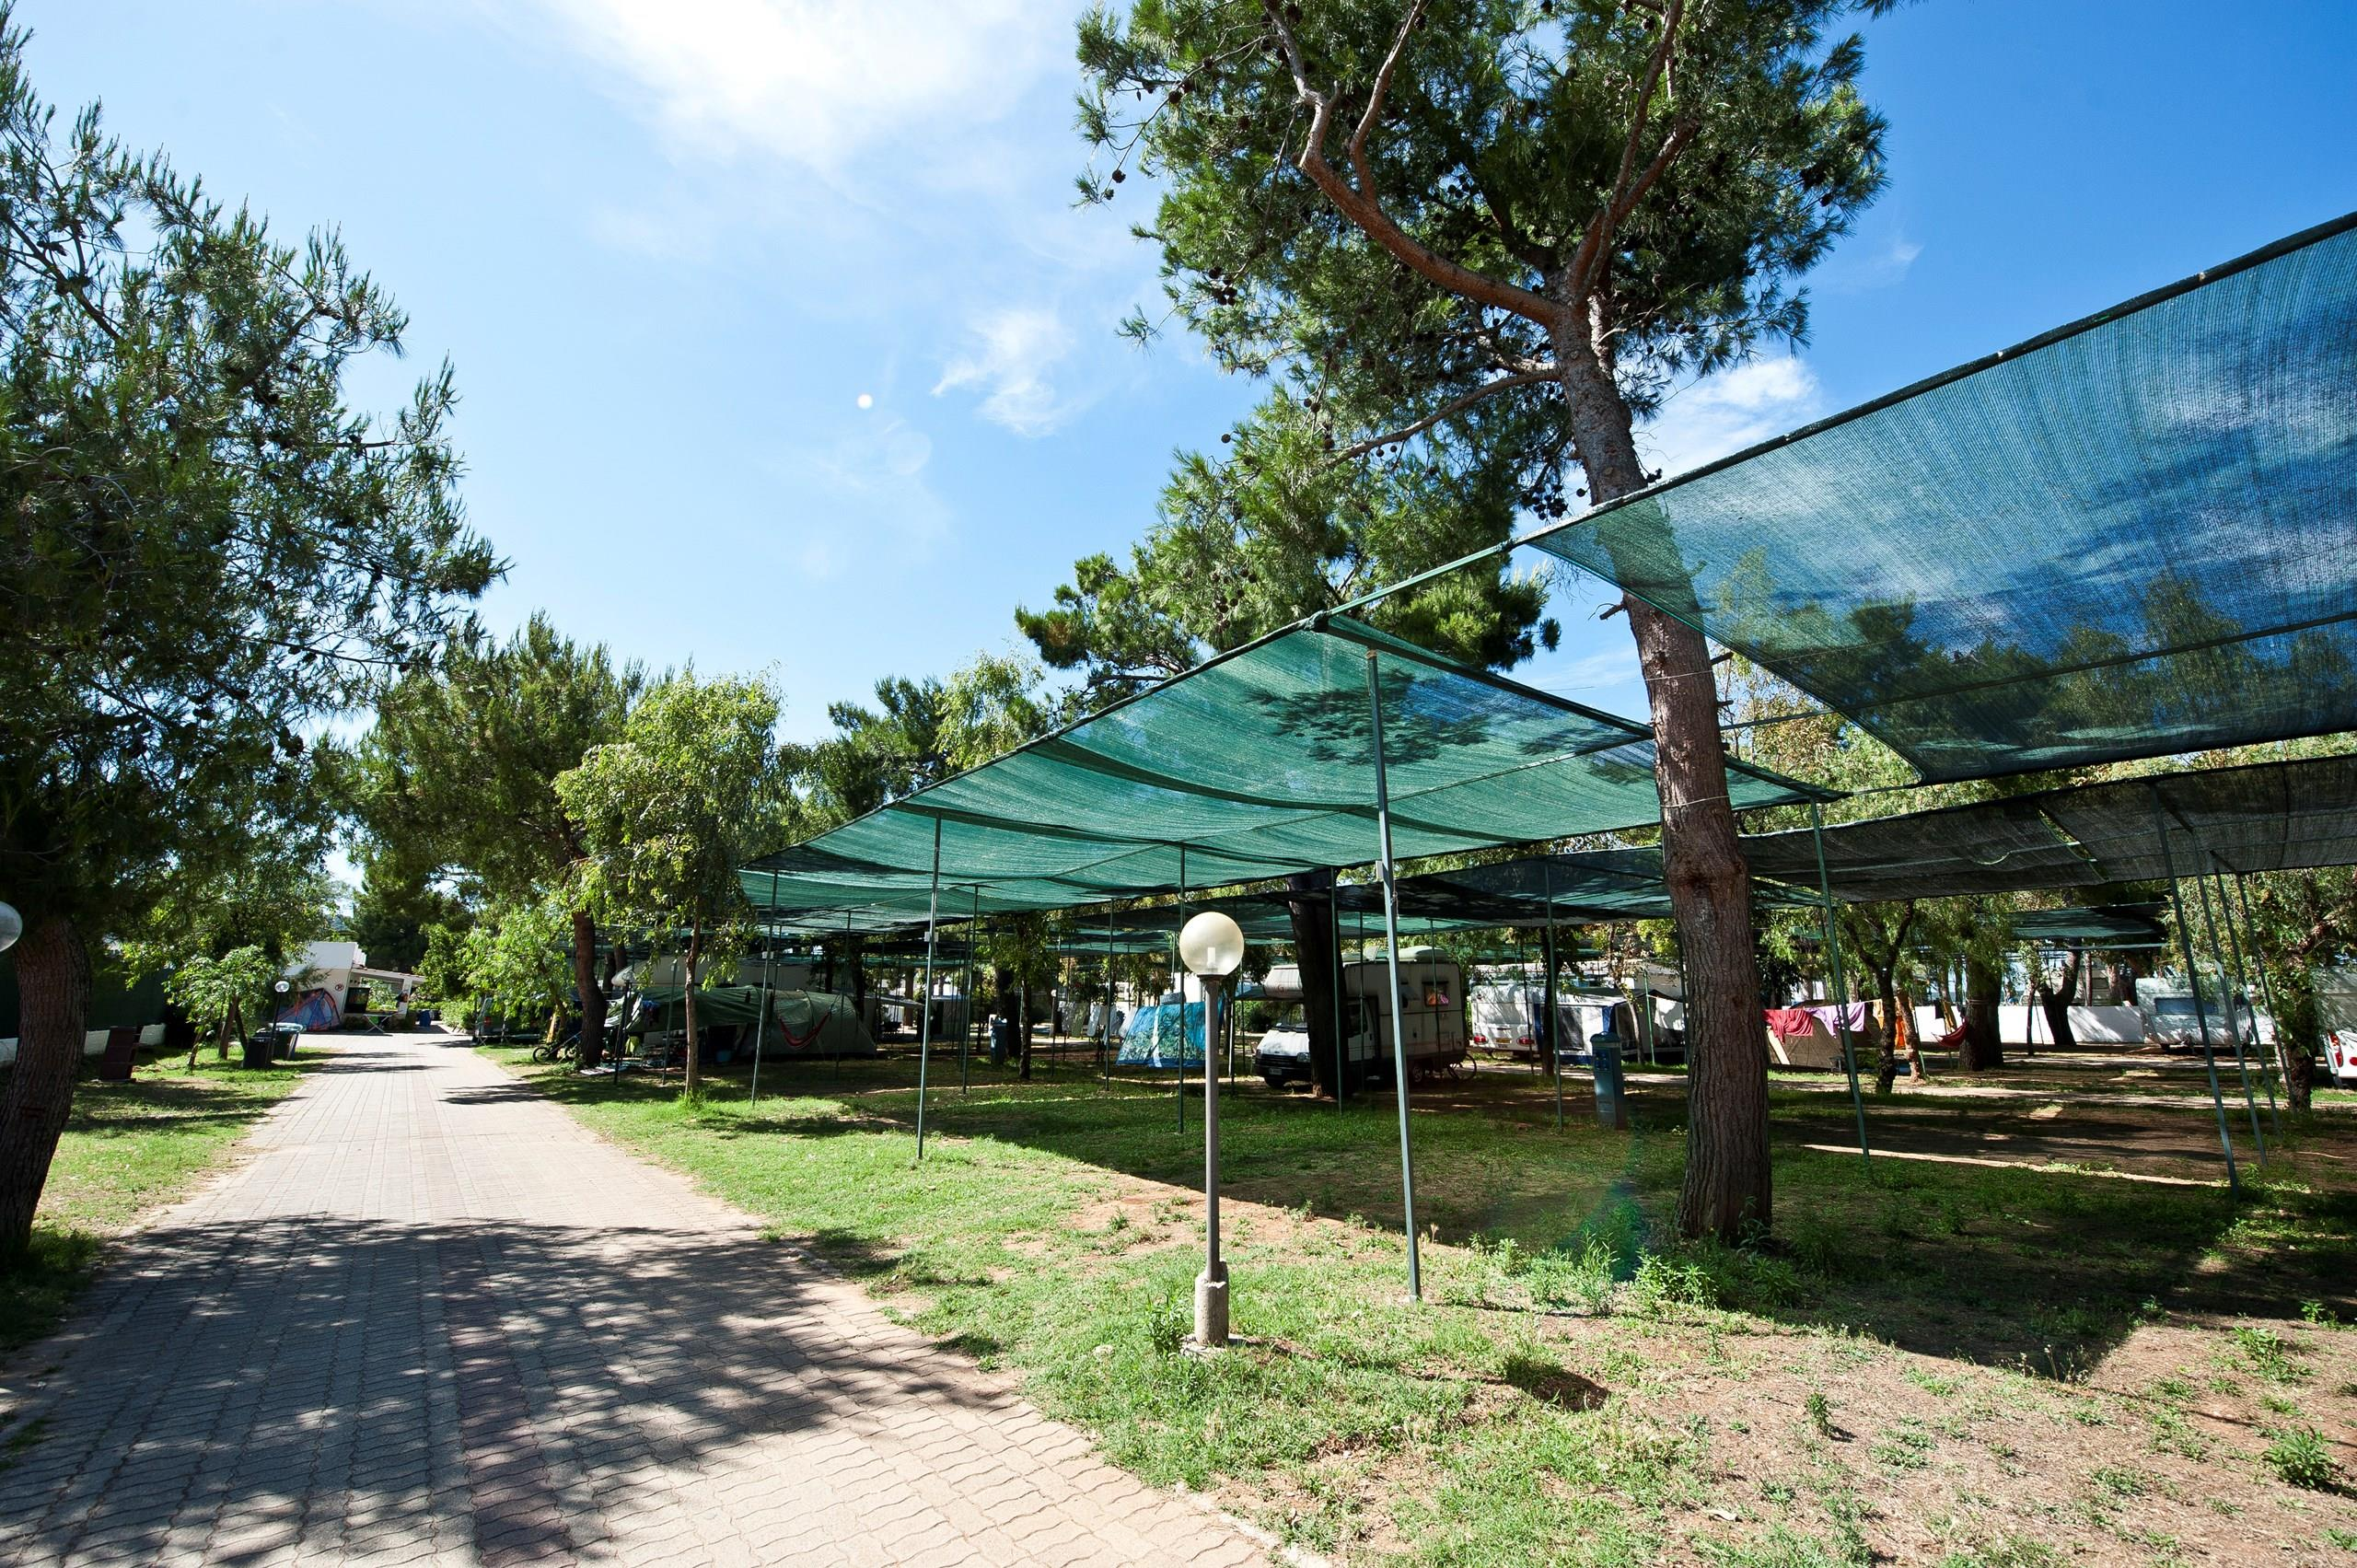 Emplacement - Emplacement - Camping Le Diomedee